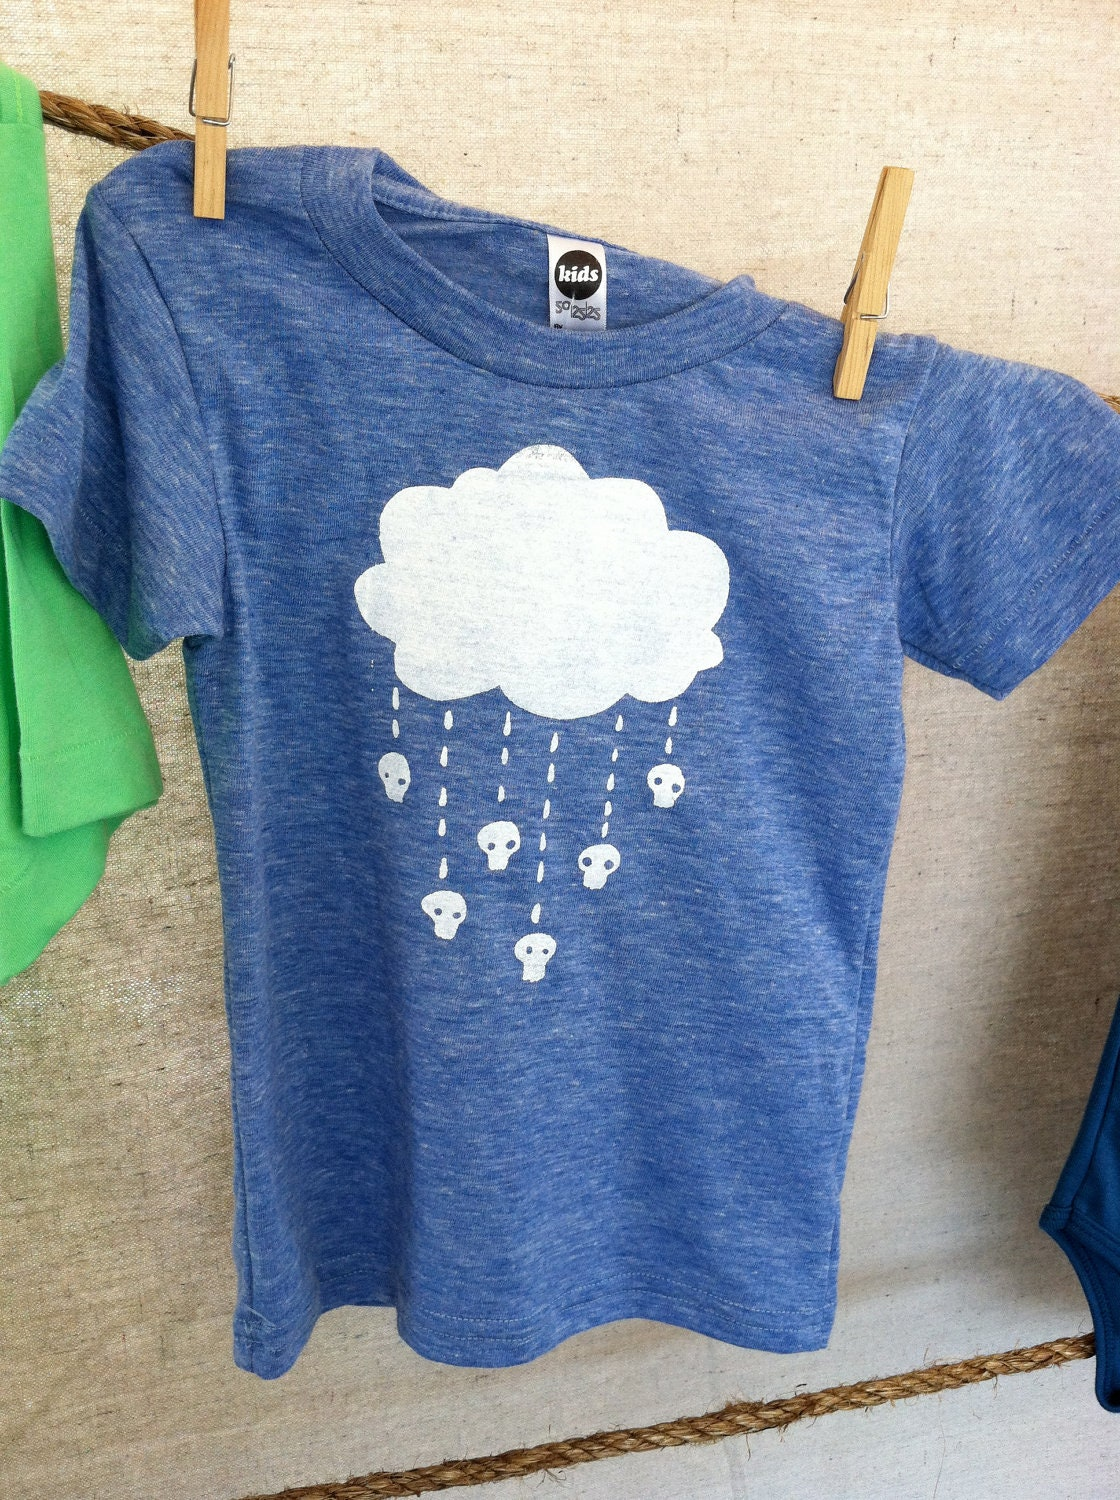 Raining Skulls Youth Tee  2T  4T  6T (5 color choices) - holdfastprintworks